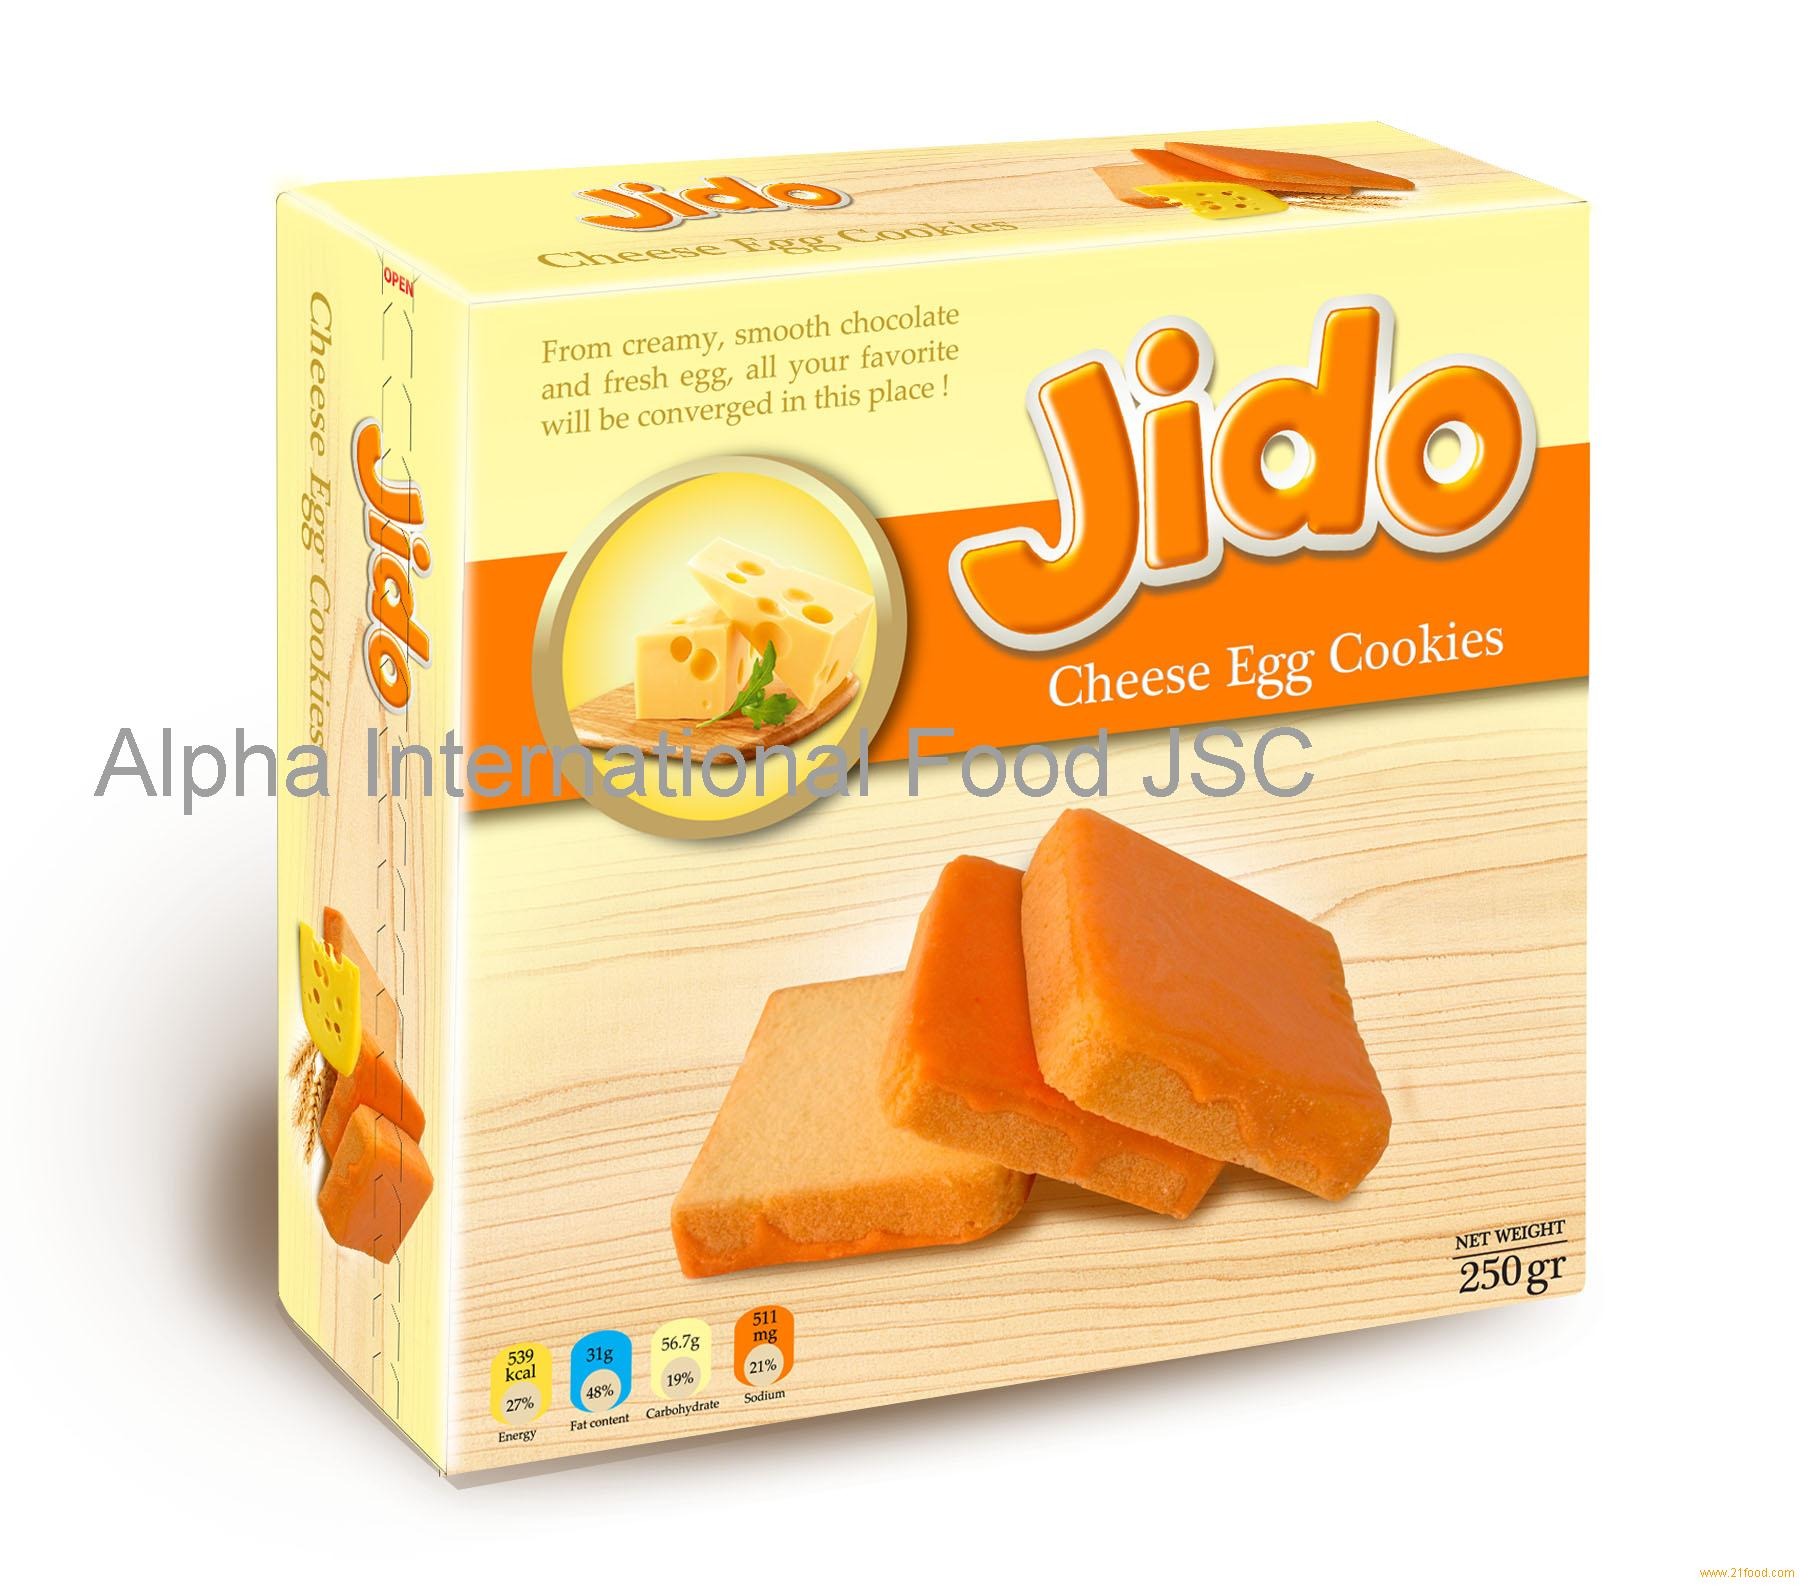 Jido cheese egg cookies 250gr products,Vietnam Jido cheese egg cookies 250gr supplier1800 x 1592 jpeg 223kB